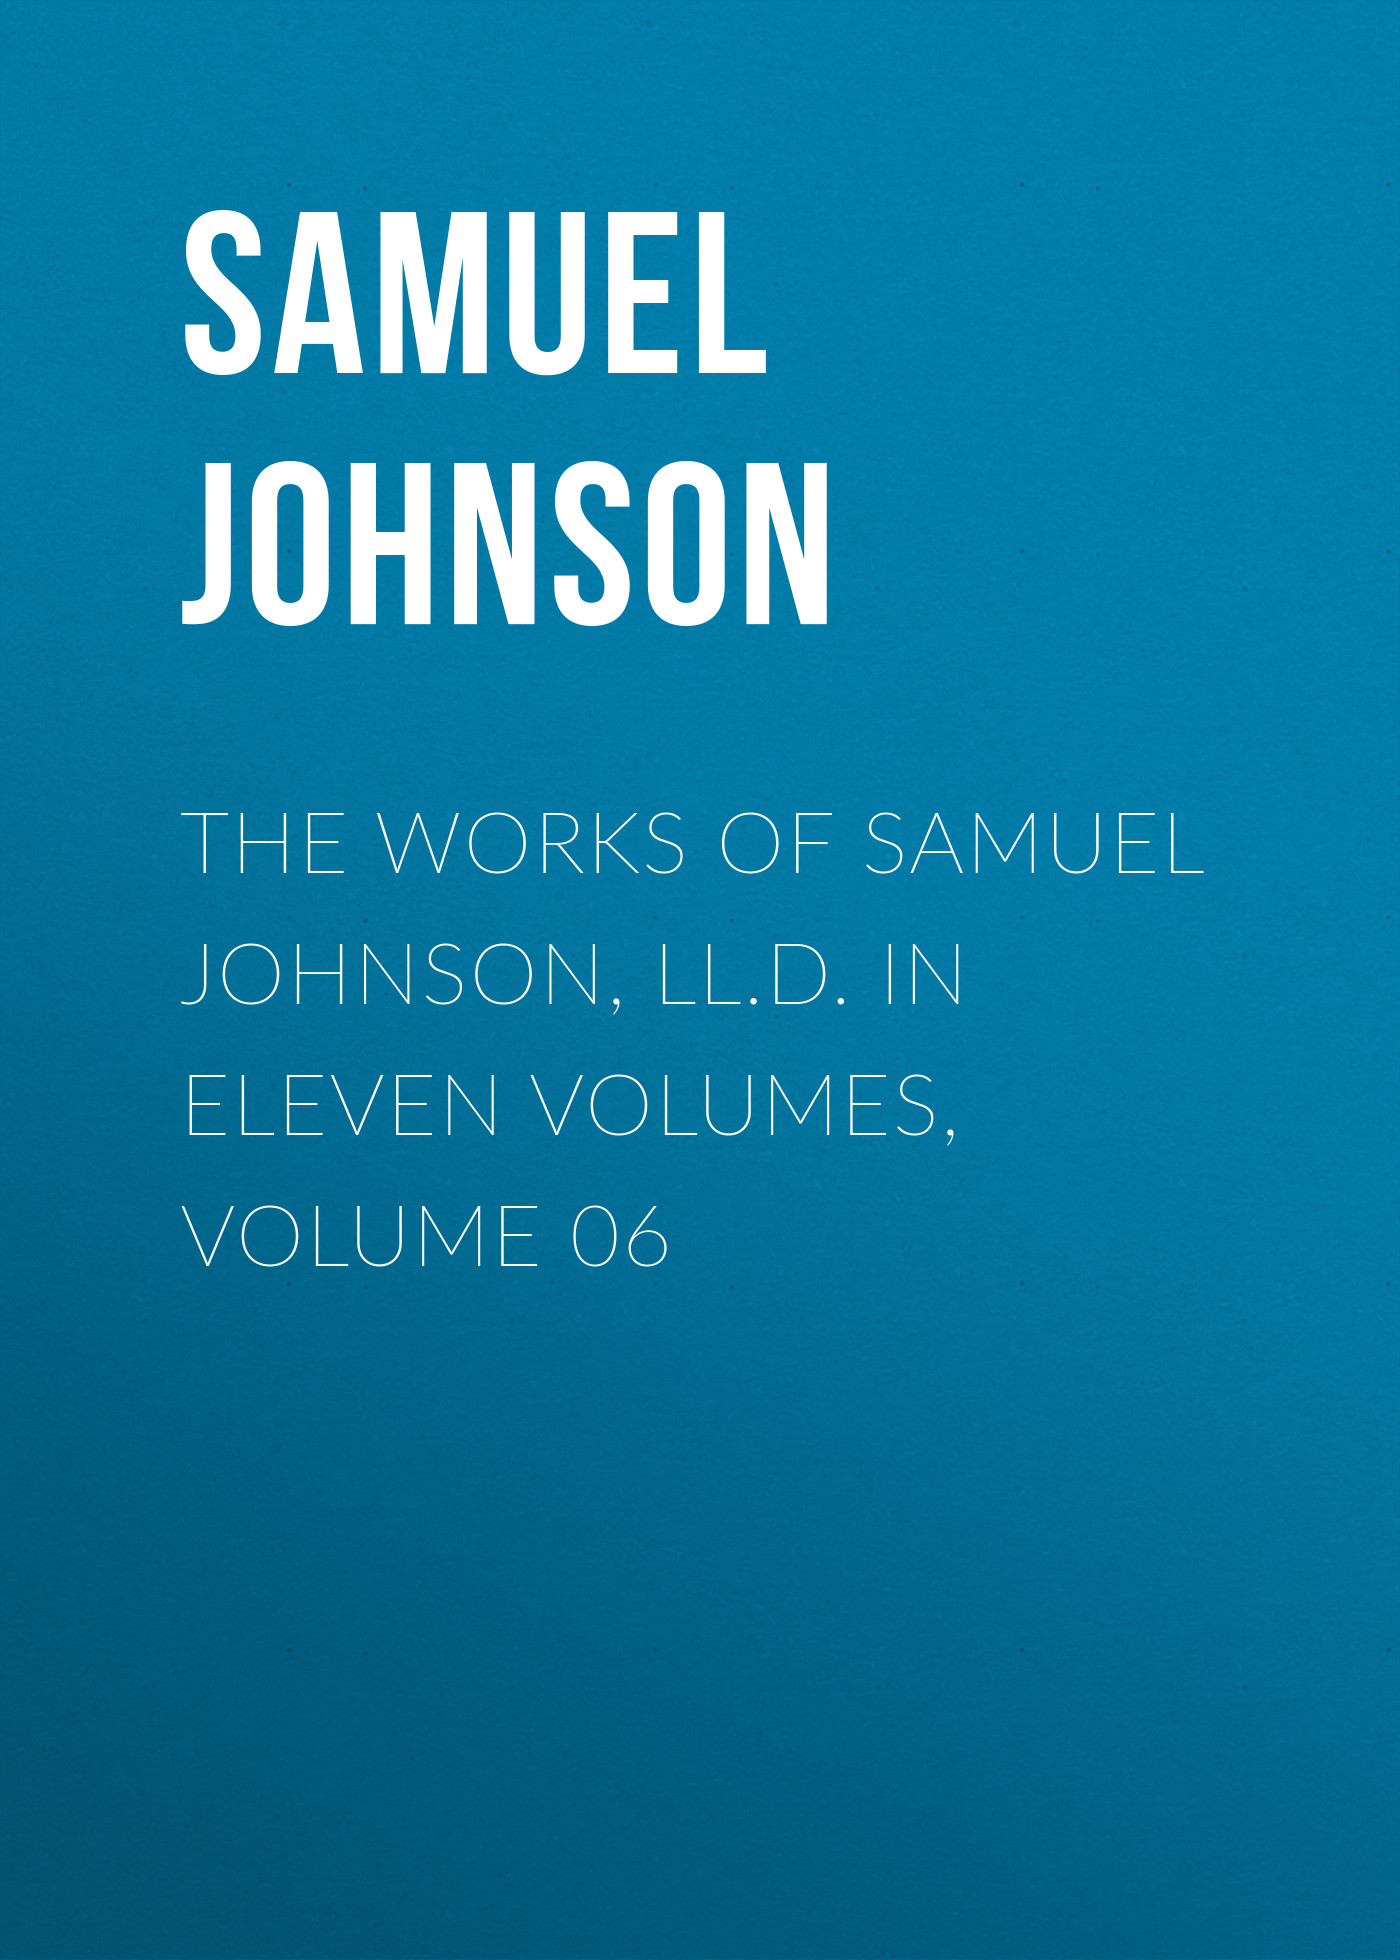 Samuel Johnson The Works of Samuel Johnson, LL.D. in Eleven Volumes, Volume 06 цена и фото